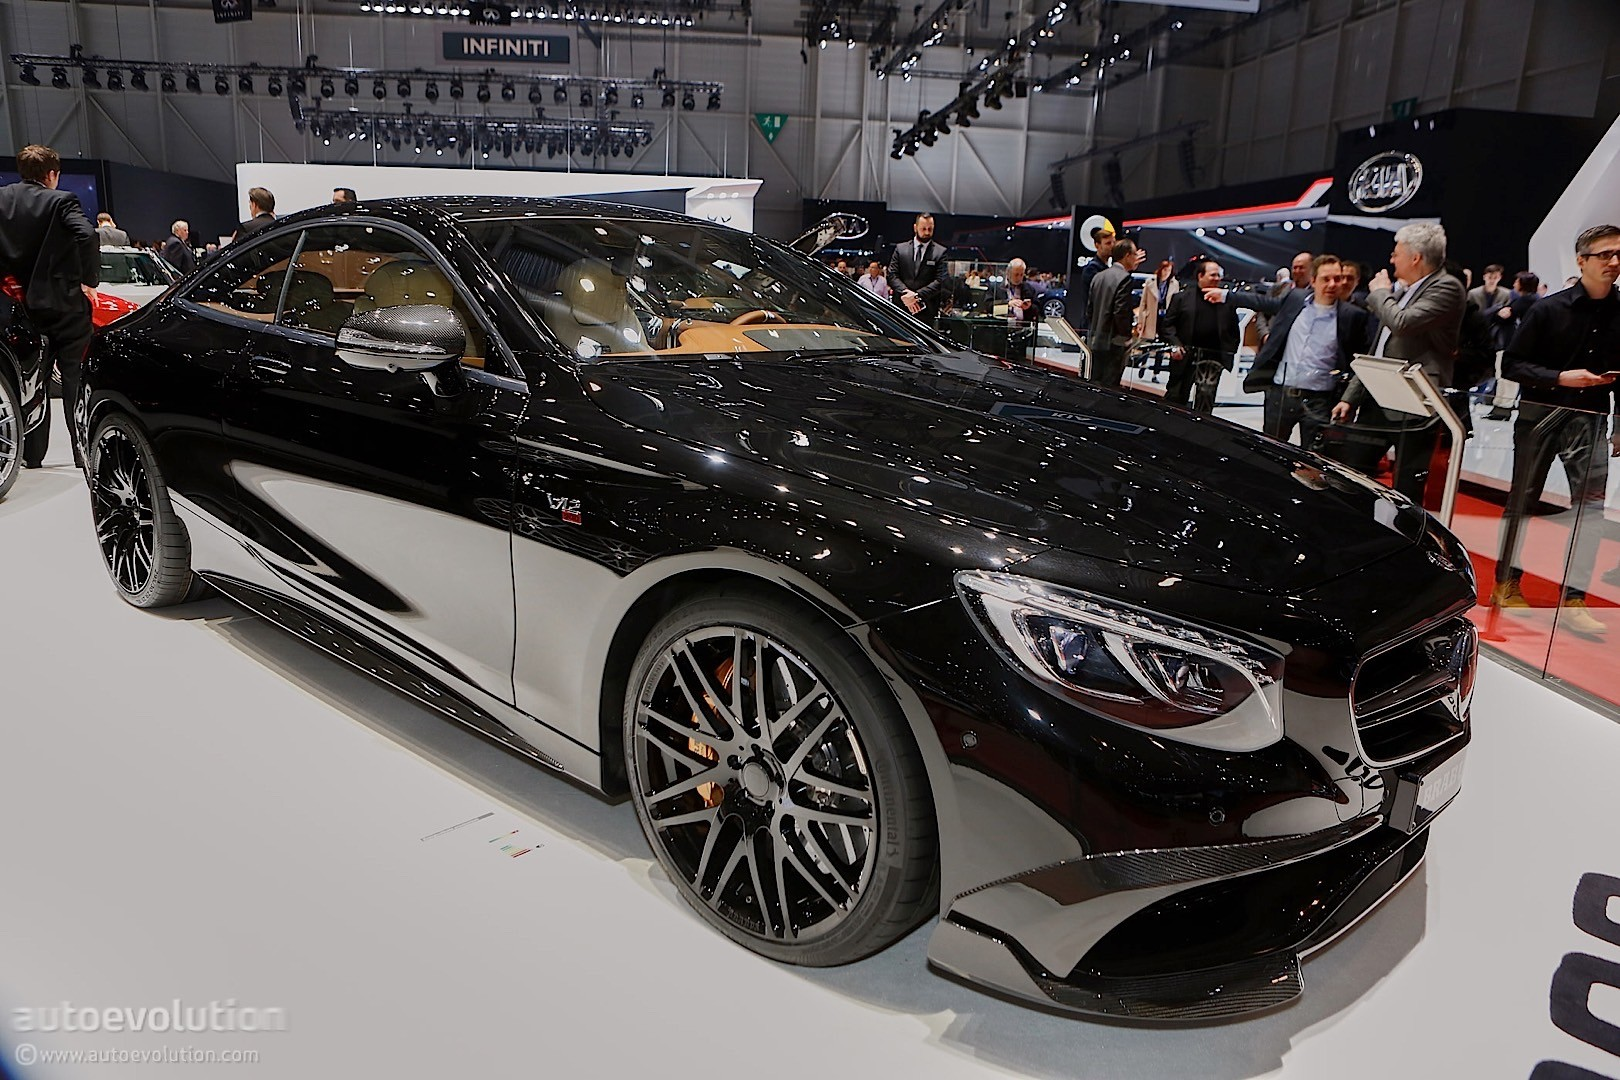 2016 Brabus 900 Rocket Coupe Is Opulent Performance